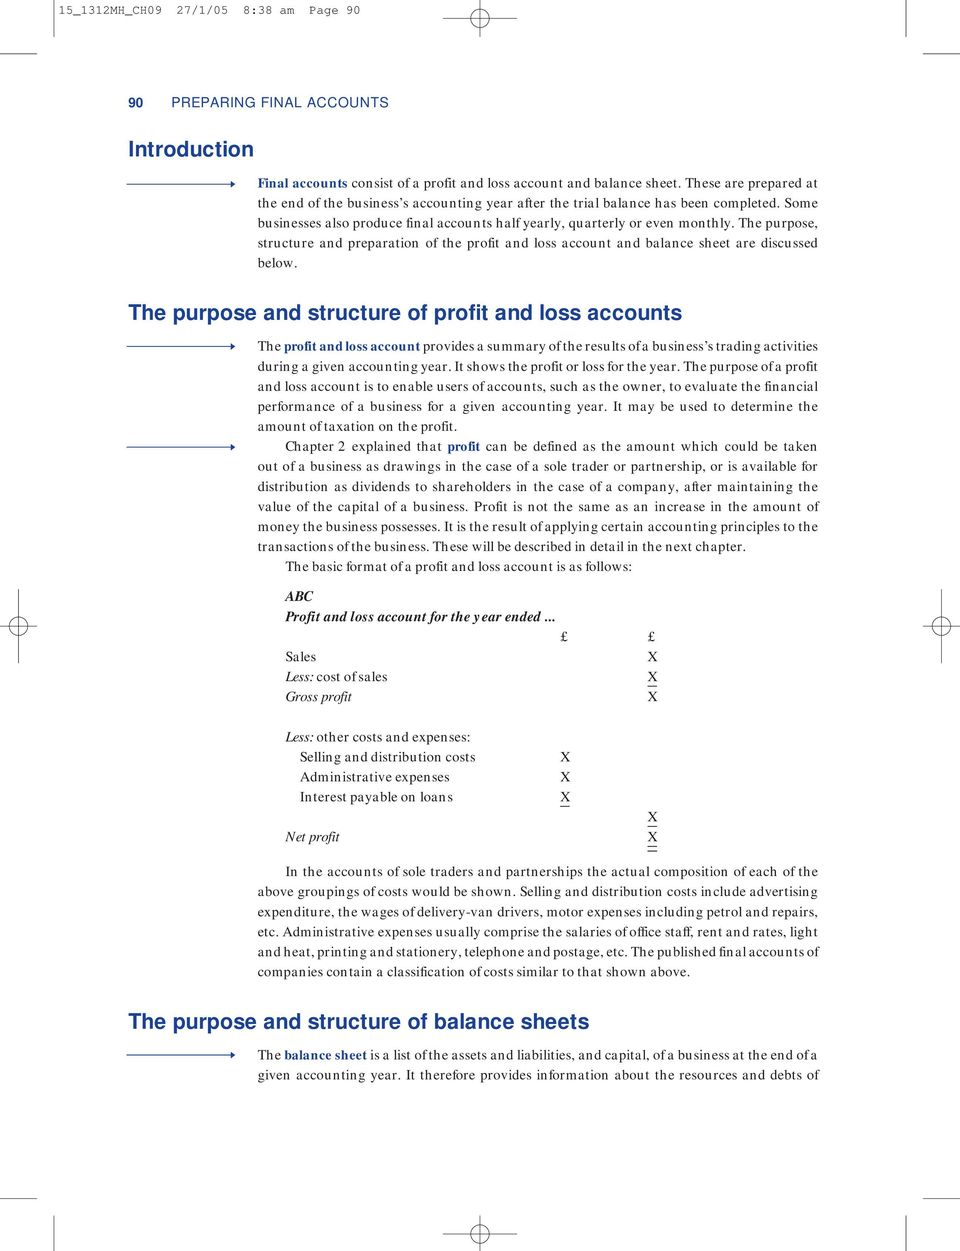 The purpose, structure and preparation of the profit and loss account and balance sheet are discussed below.